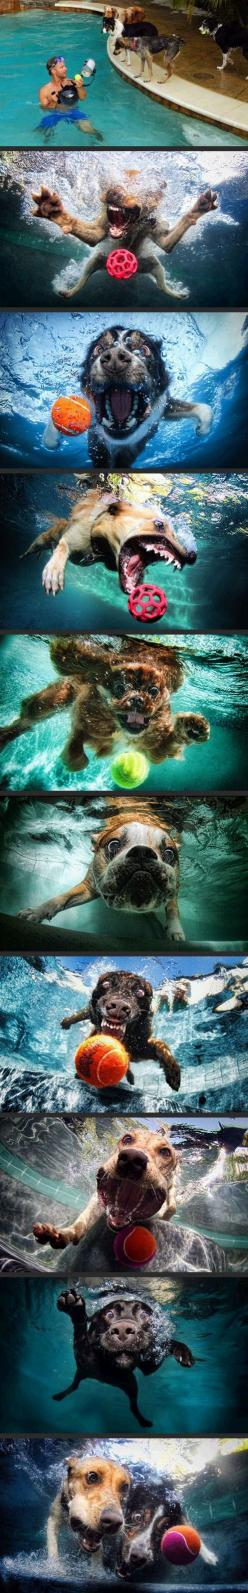 Dogs   ball   underwater camera = Awesome: Underwater Camera, Funny Pictures, Pet, Dogs Underwater, Ball Underwater, Underwater Dog, Animal, Dogs Ball